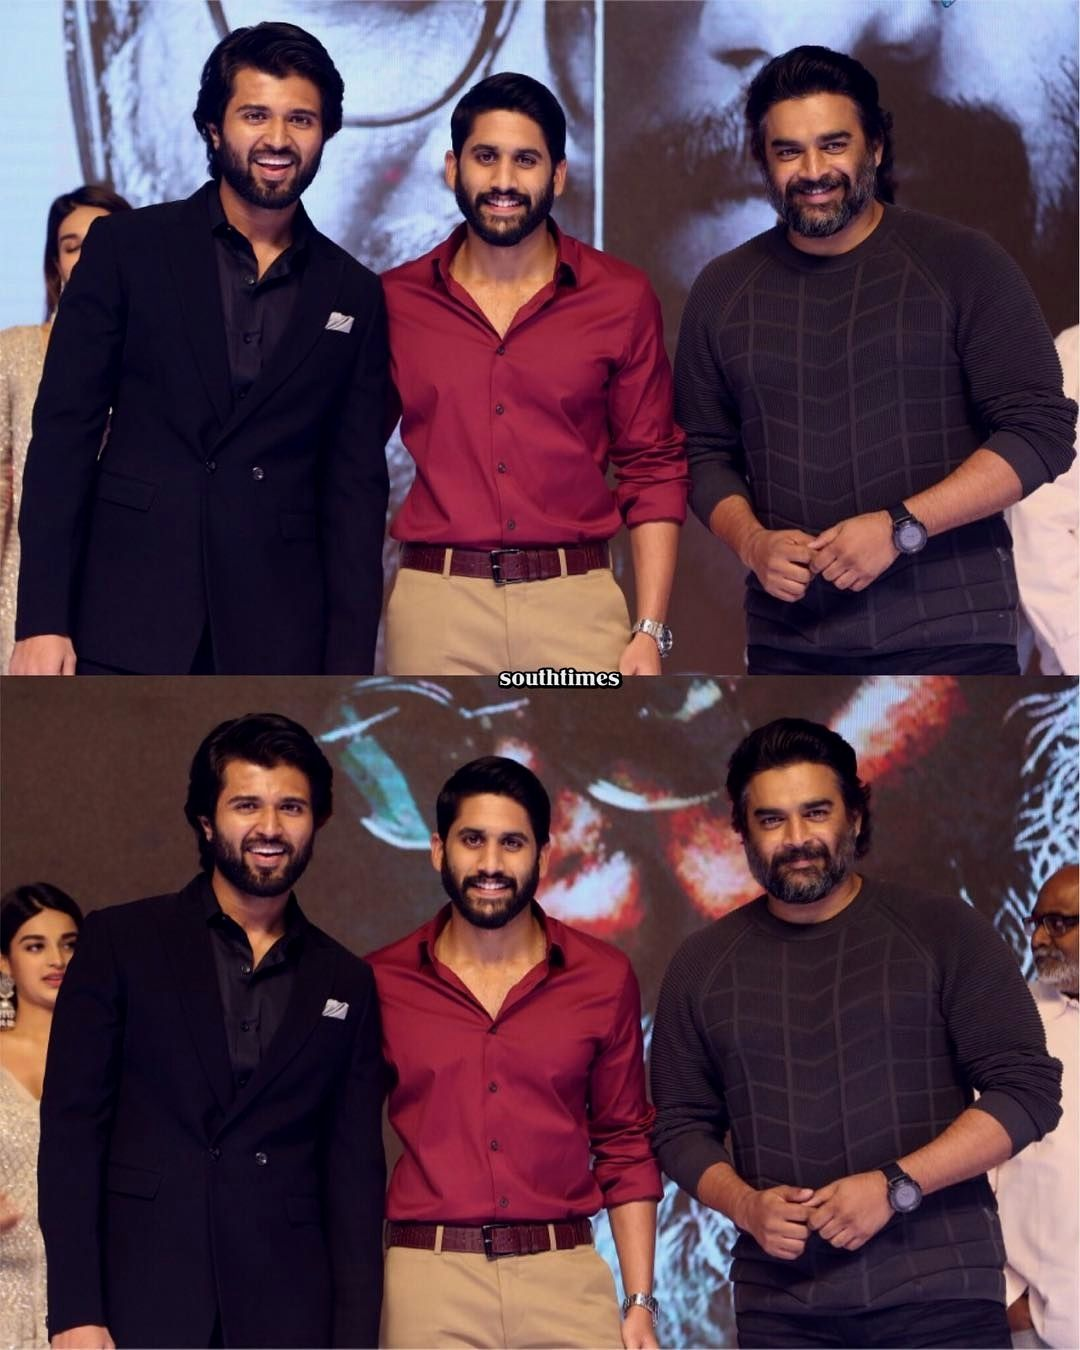 Moments from Savyasachi prerelease event held yesterday